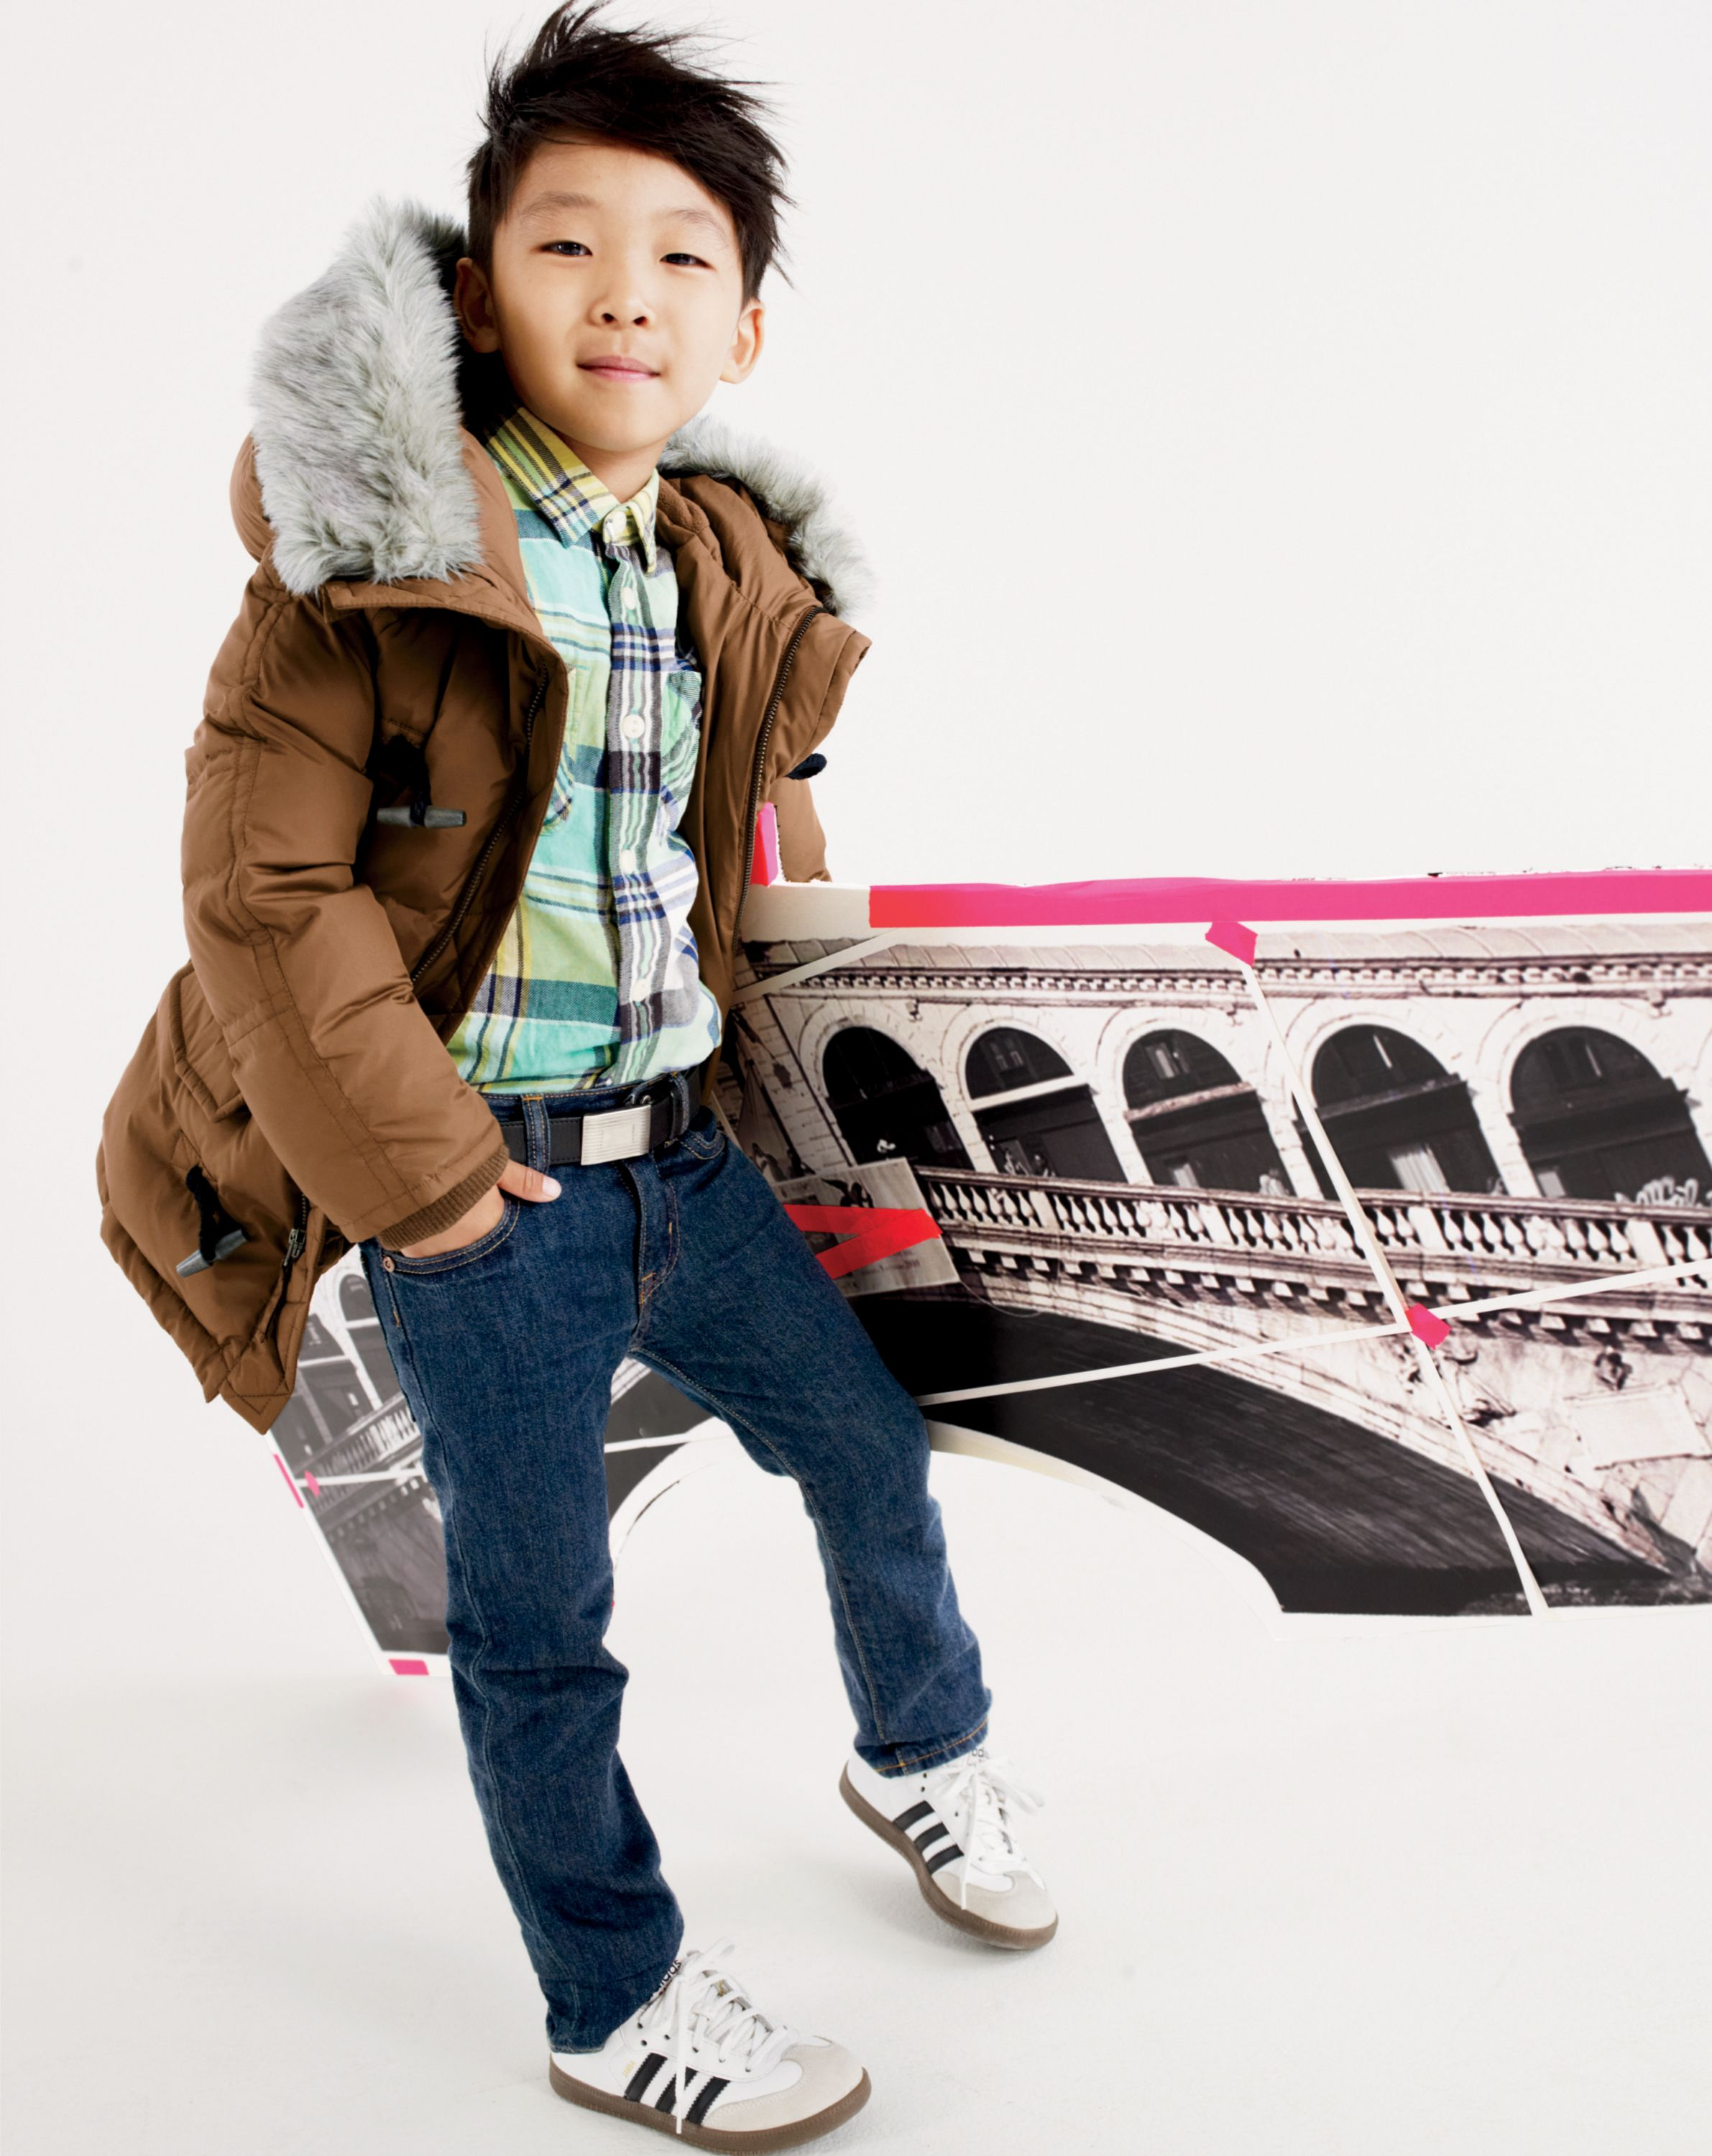 a7704bb1917 J.Crew Boys' expedition parka. | Stylish Offspring | Kids fashion ...